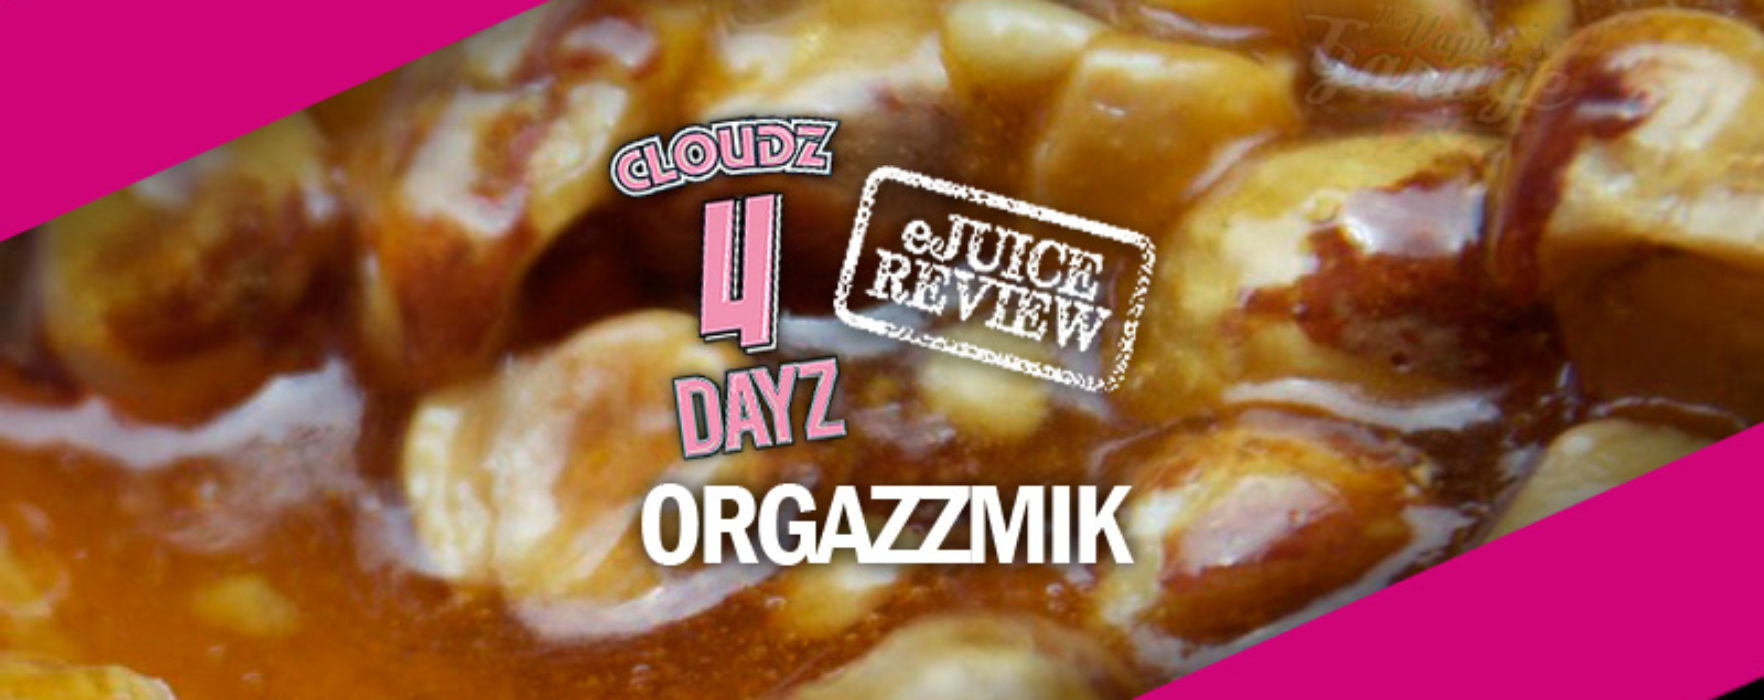 eJuice Review: Orgazzmik by Cloudz 4 Dayz